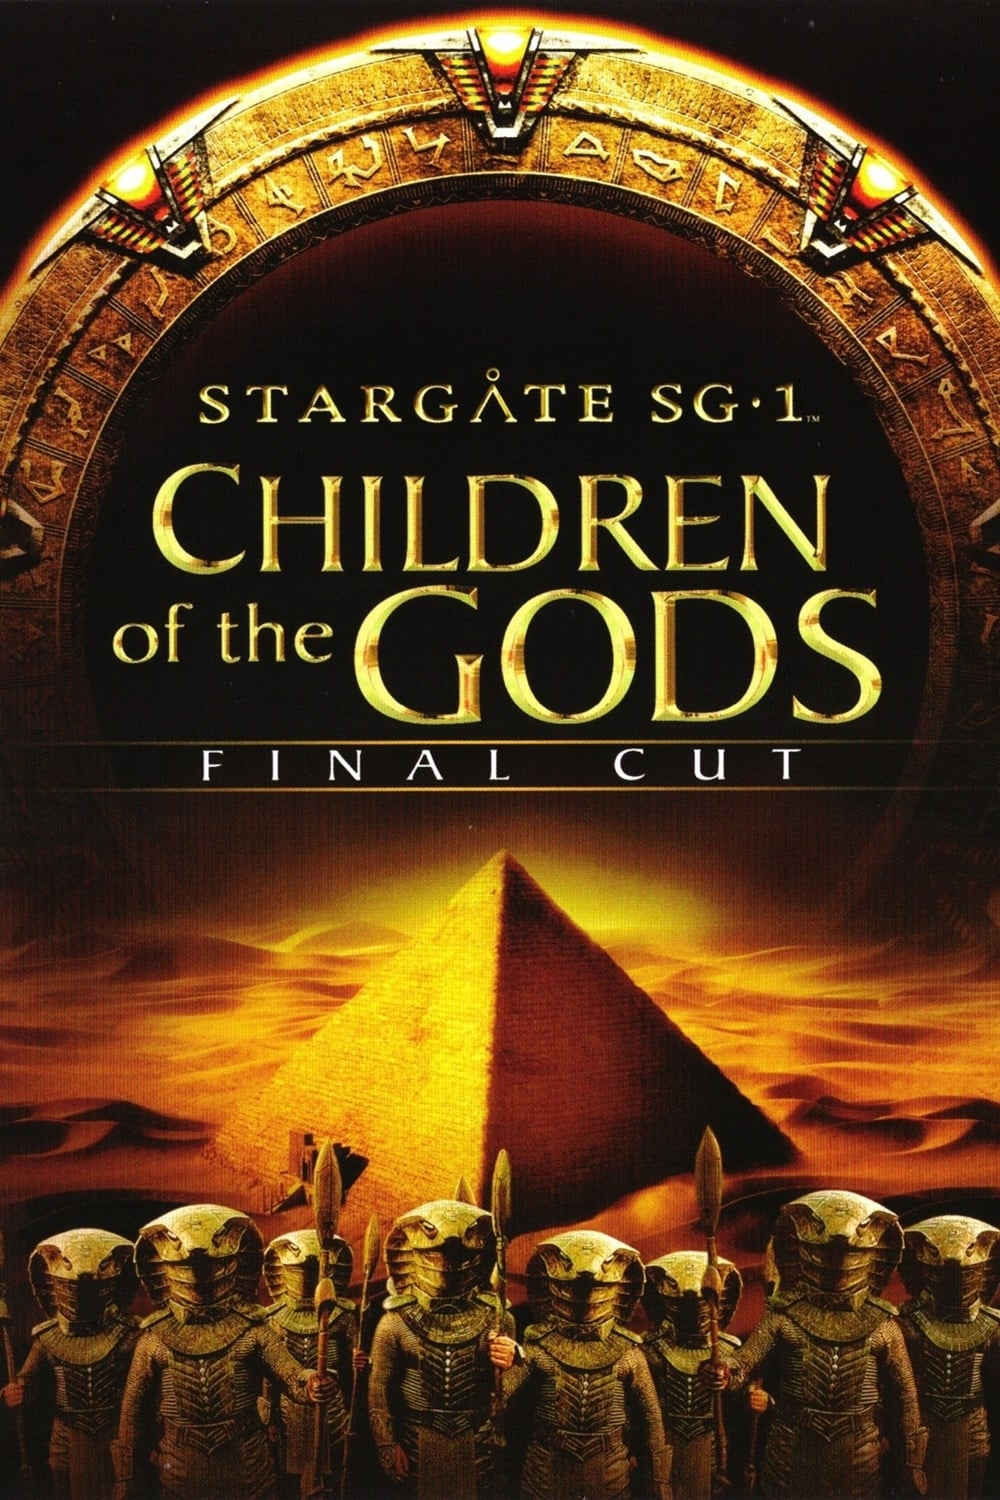 Stargate SG-1: Children of the Gods (2009)